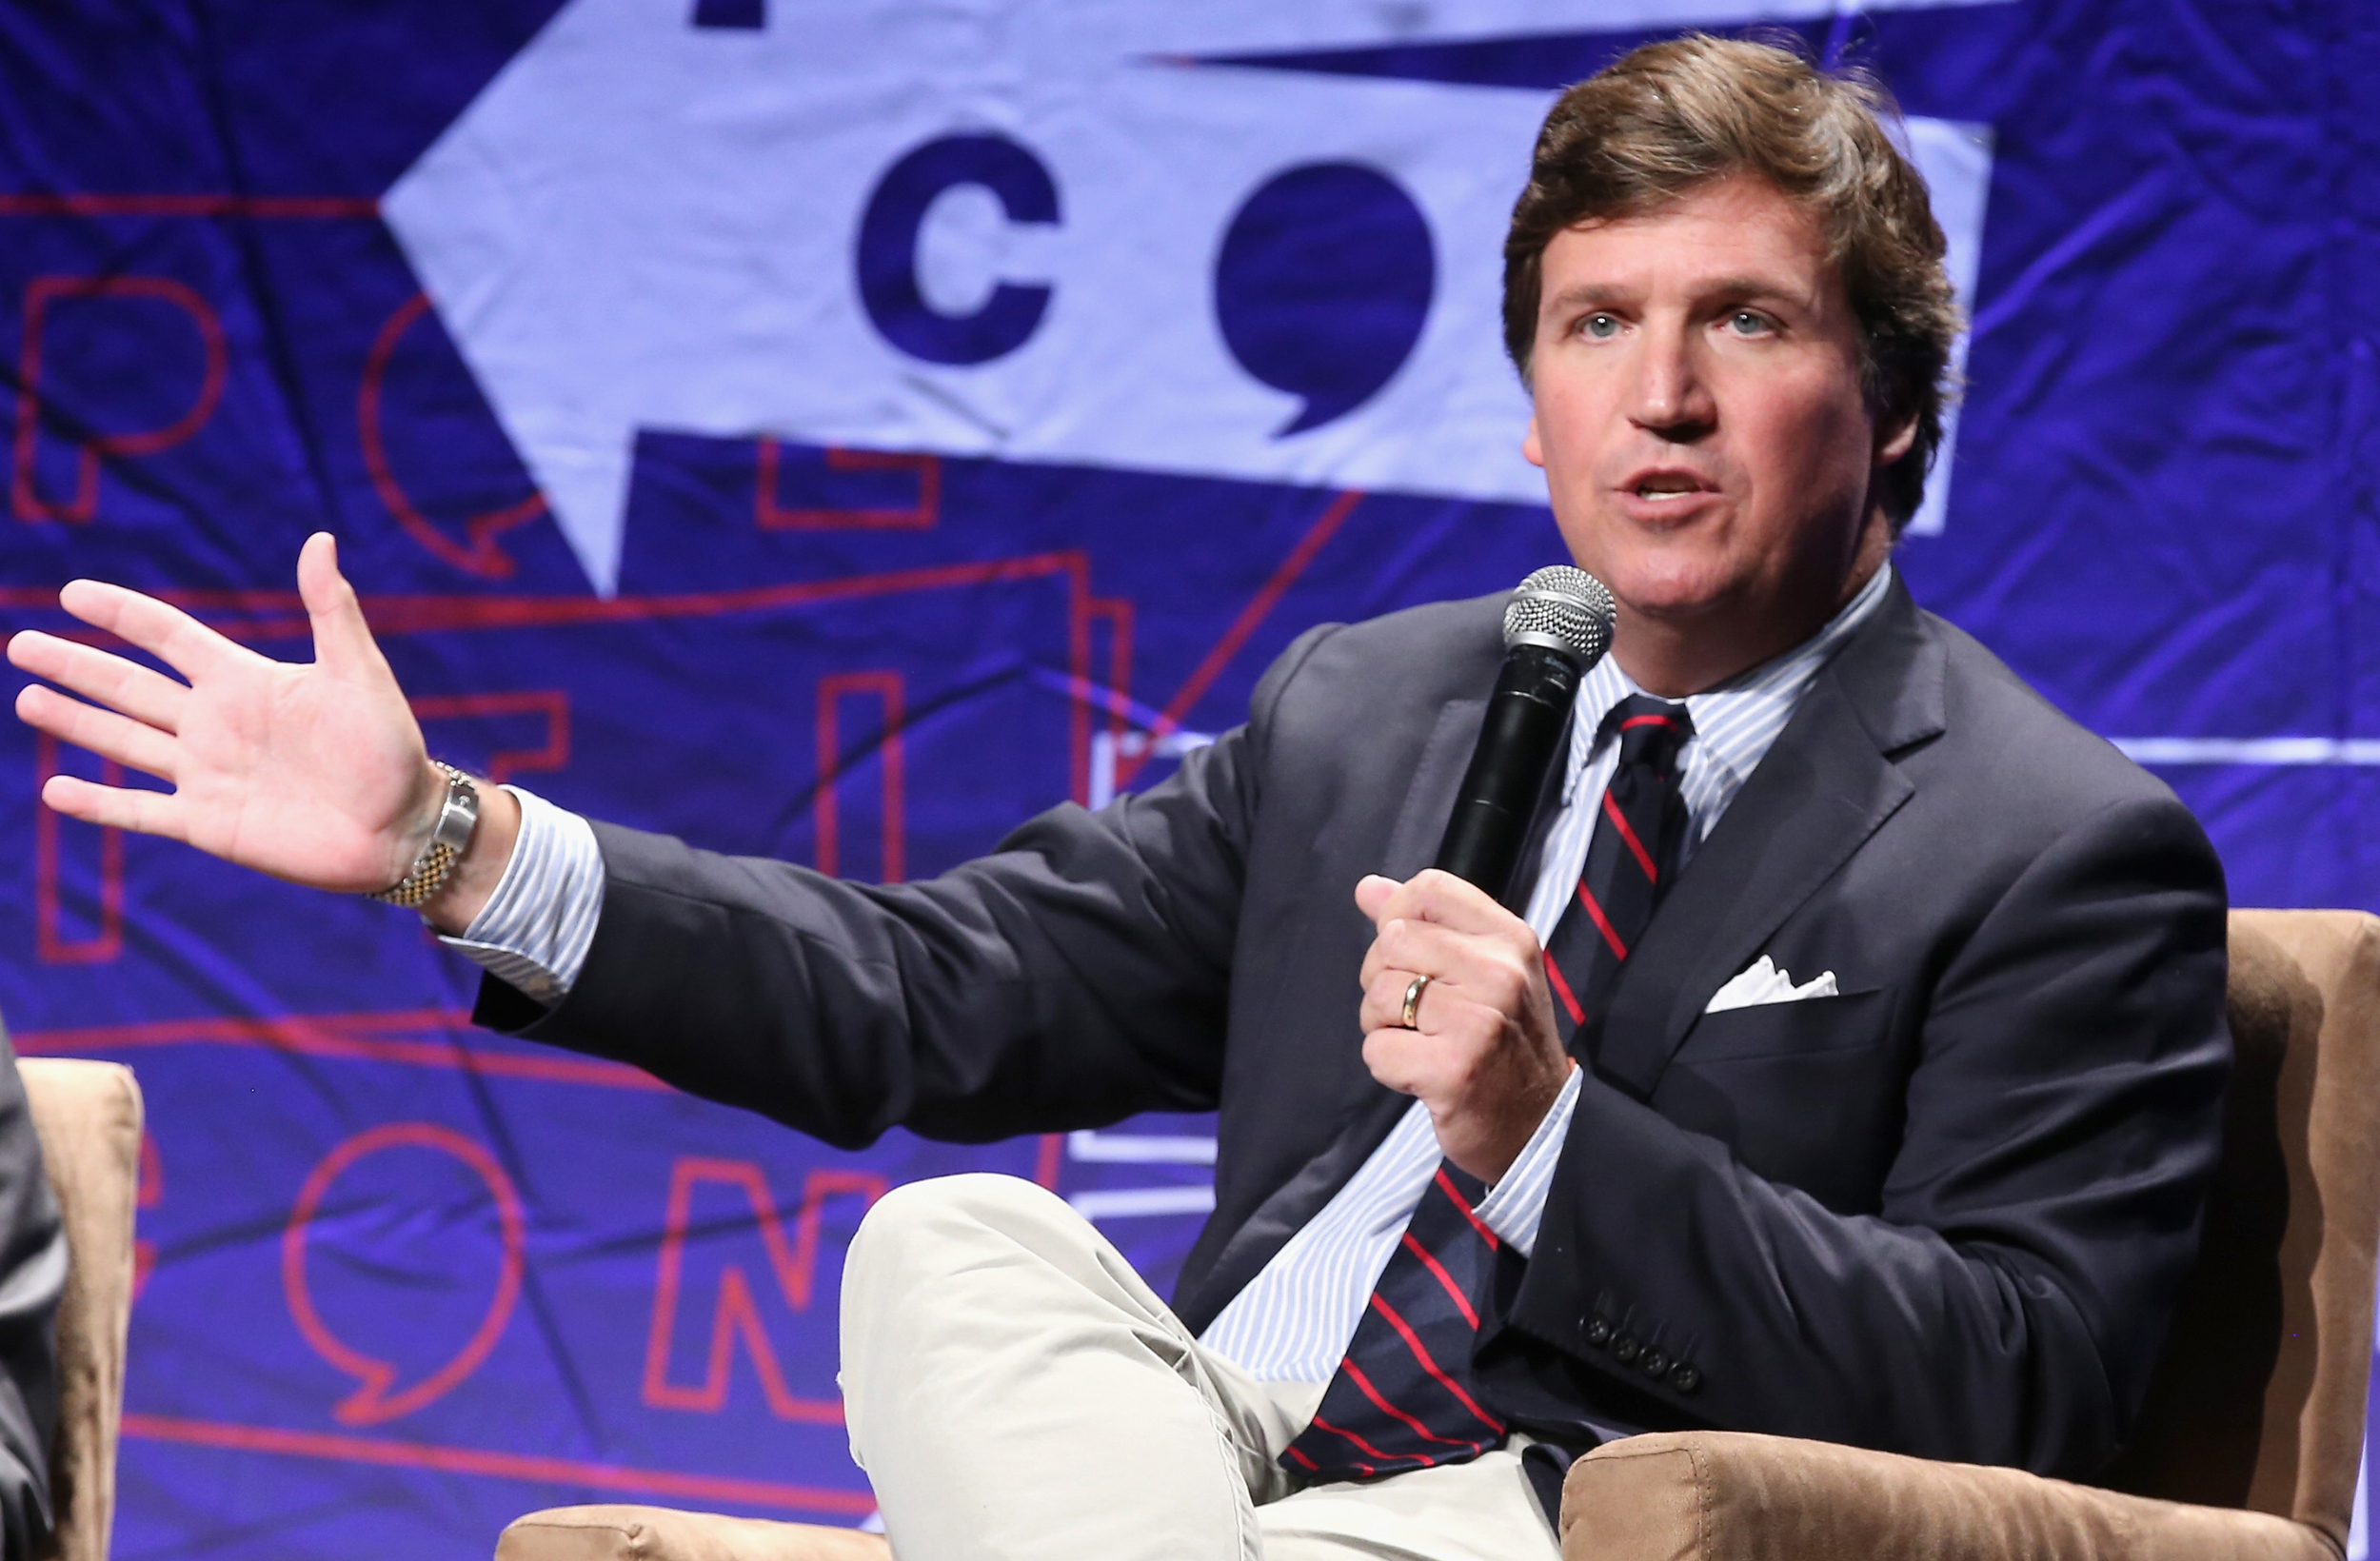 , FOX News Anti-Vaxxer Tucker Carlson Pushes Pro-COVID Agenda | Updated with Video of Fox Praising Vax, The Politicus